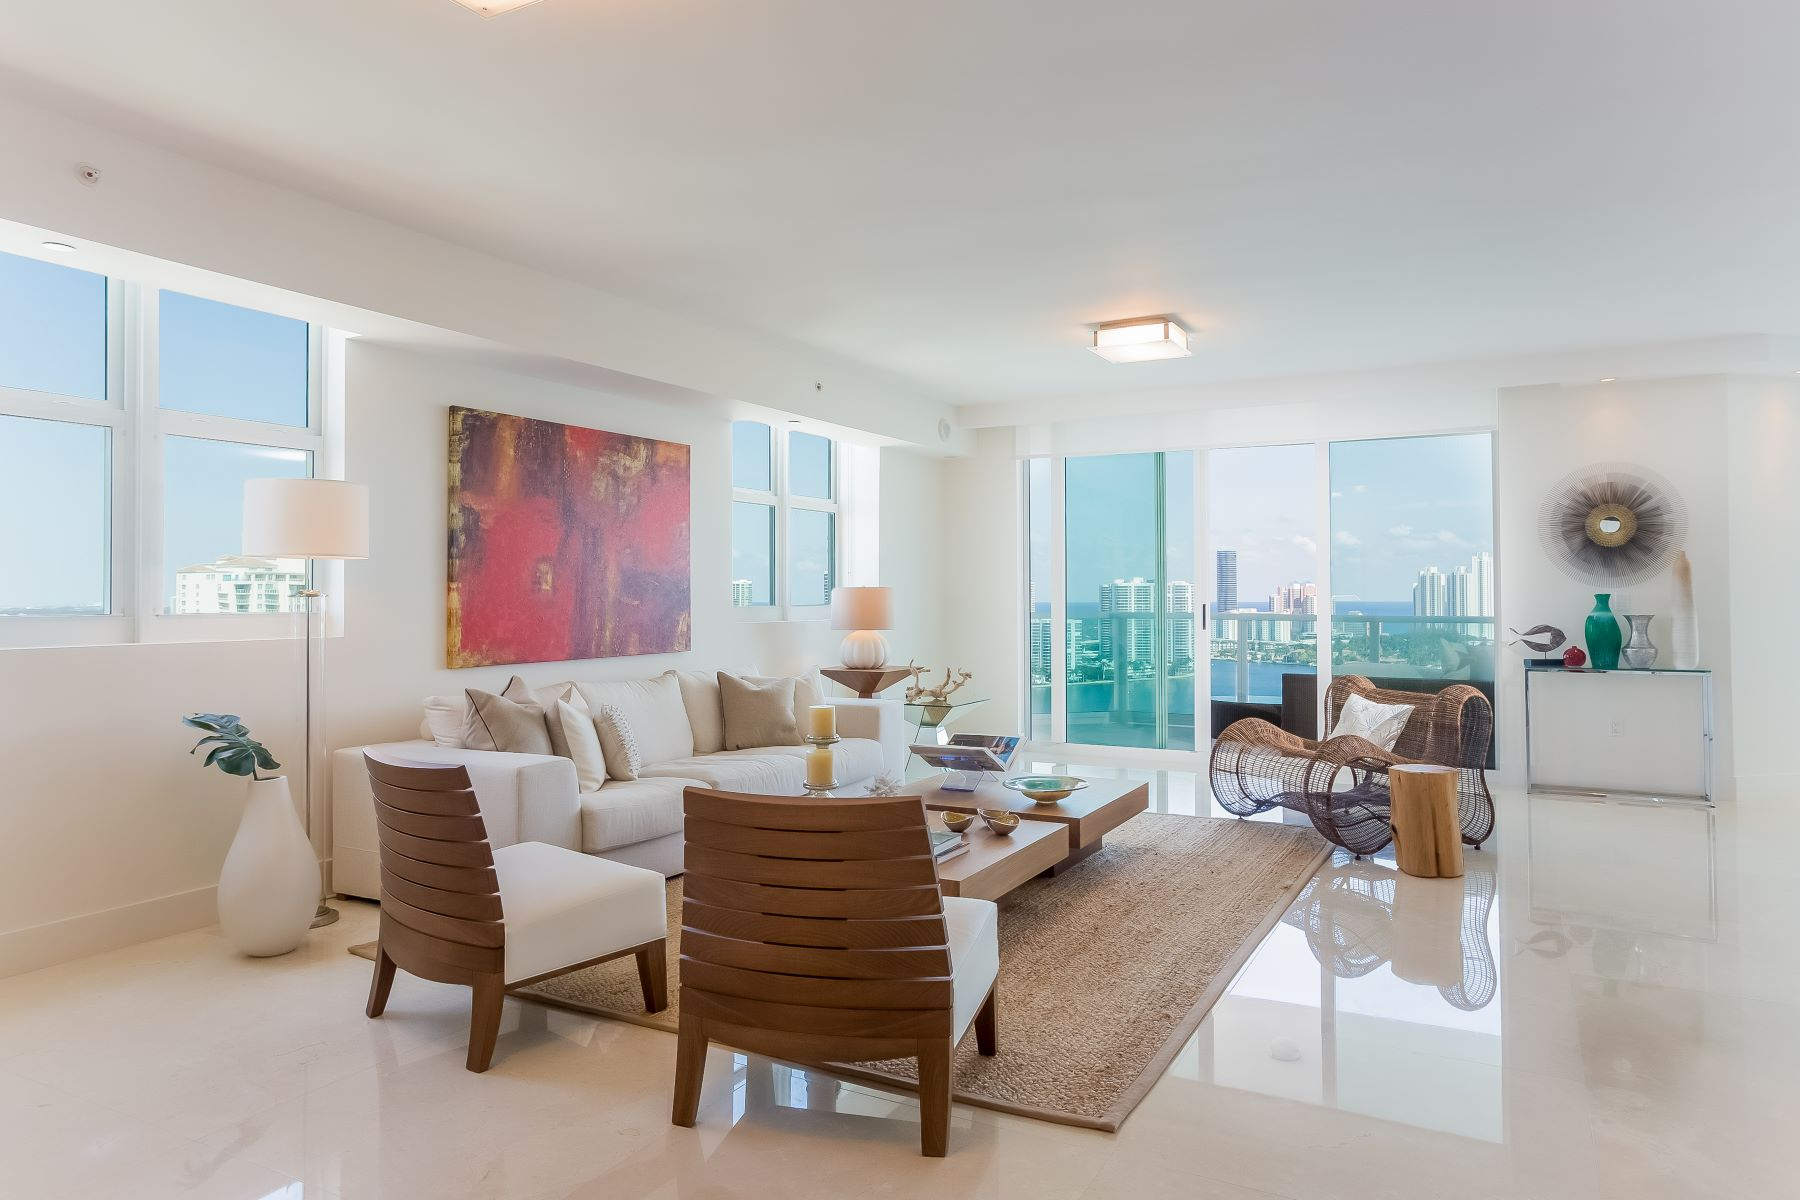 Condominium for Sale at 3301 Ne 183rd St #2501 3301 Ne 183rd St 2501 Aventura, Florida 33160 United States